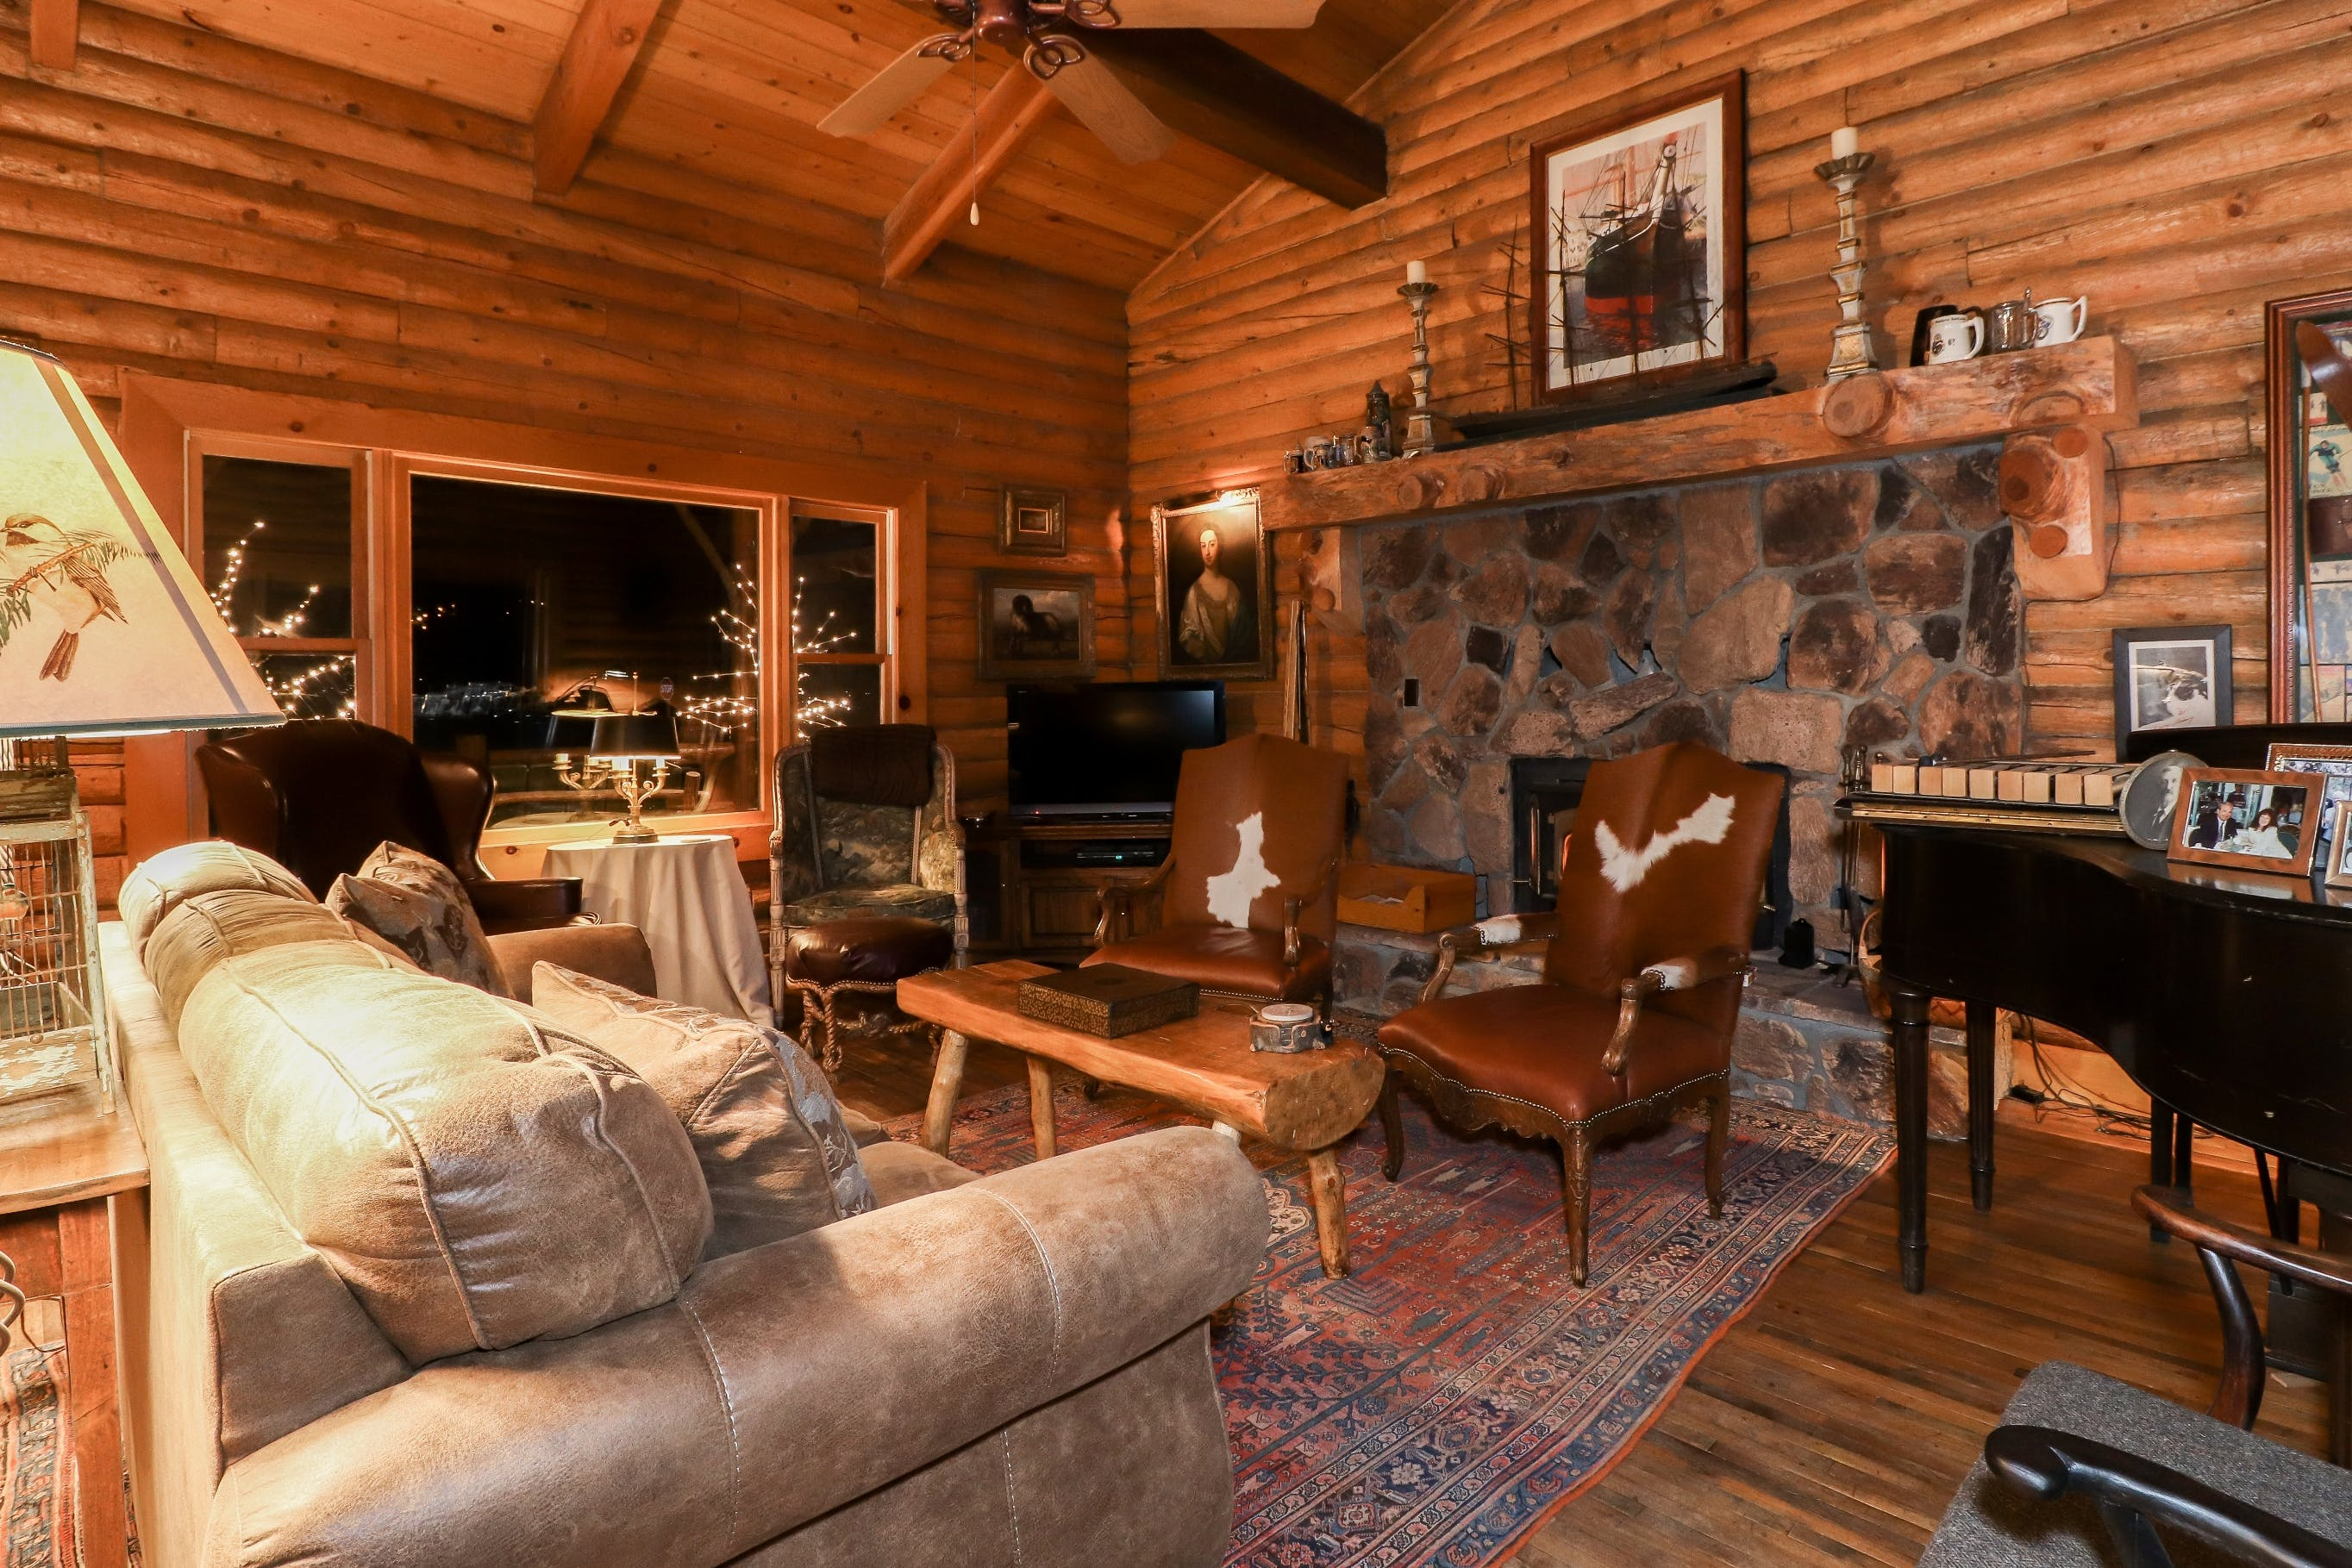 Log home B&B on quiet north shore of Big Bear Lake with rustic elegance